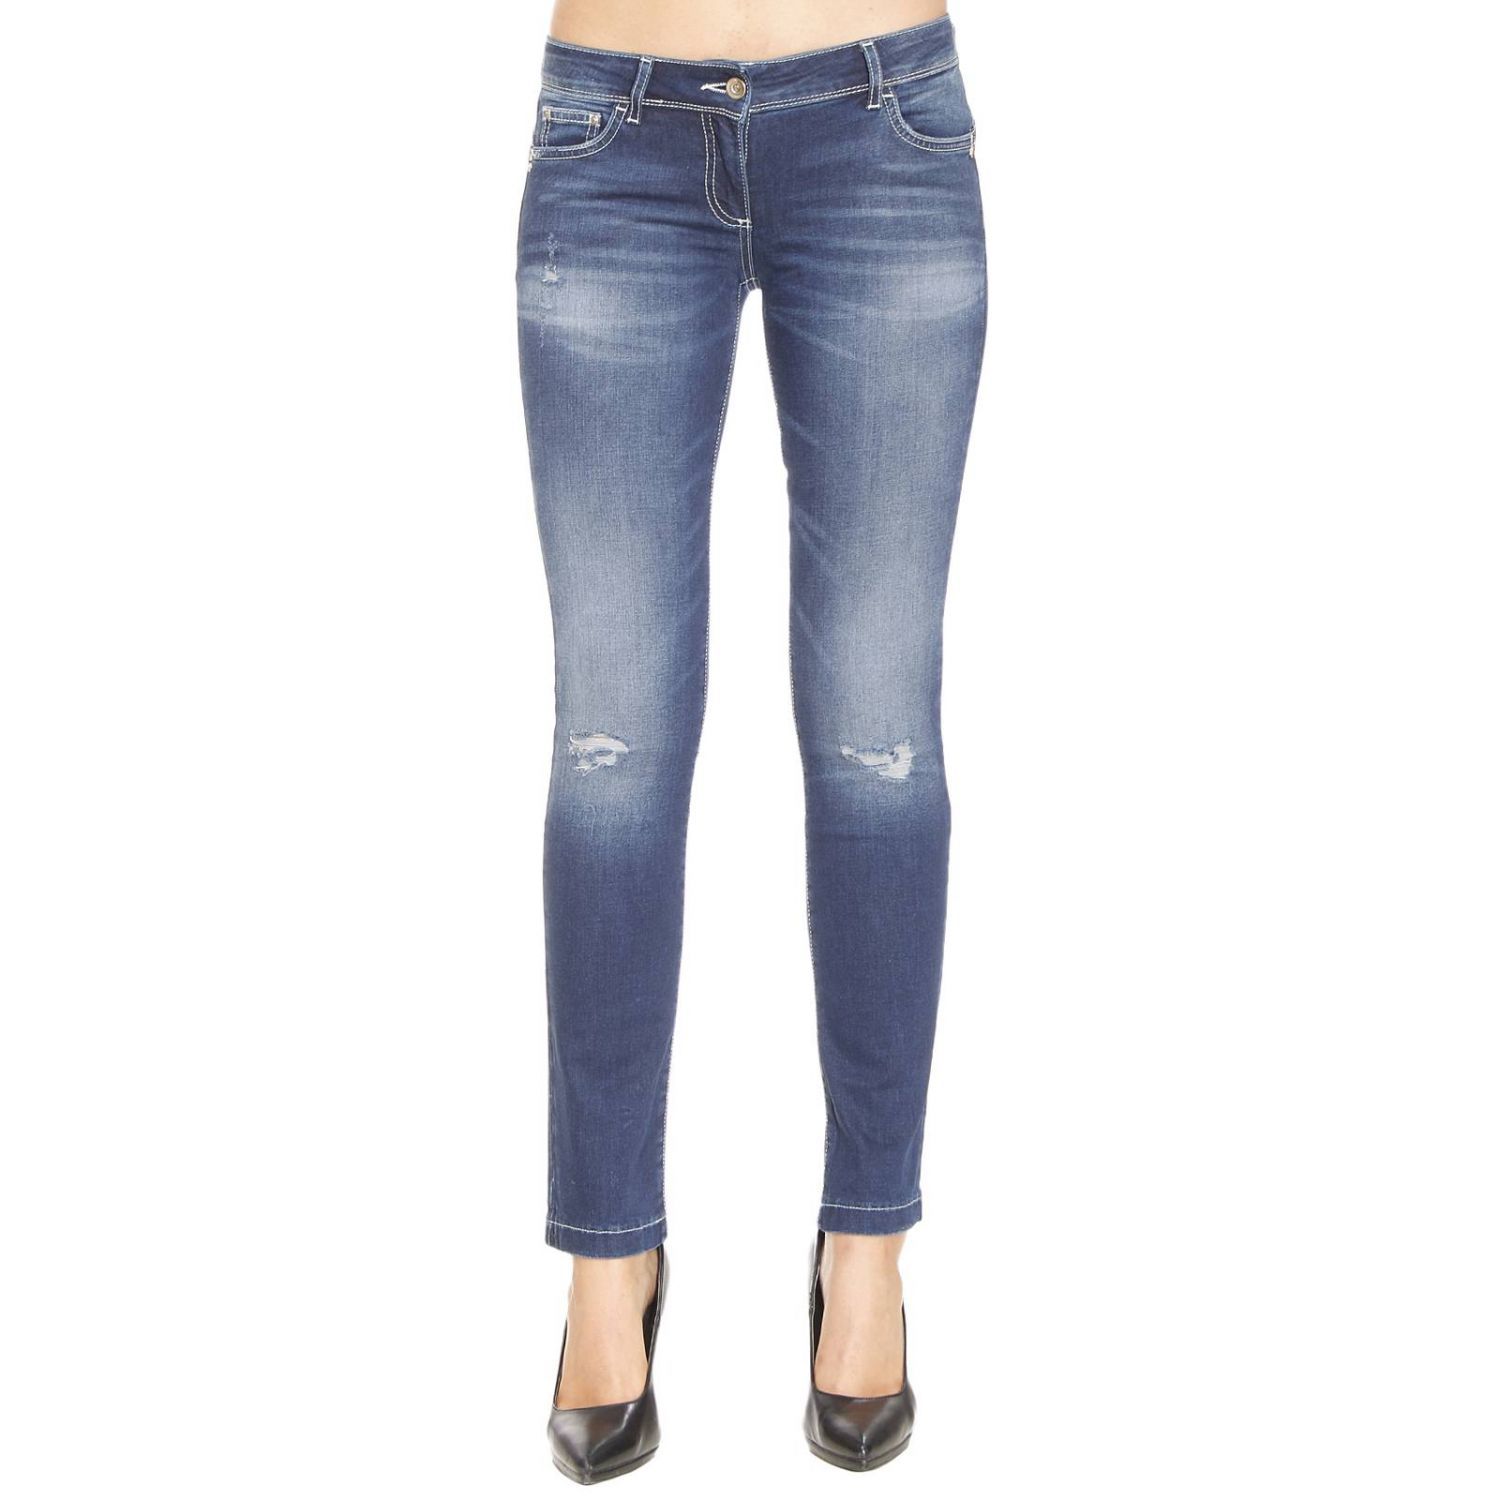 Lyst - Patrizia Pepe Jeans For Women Woman in Blue - Save 12%